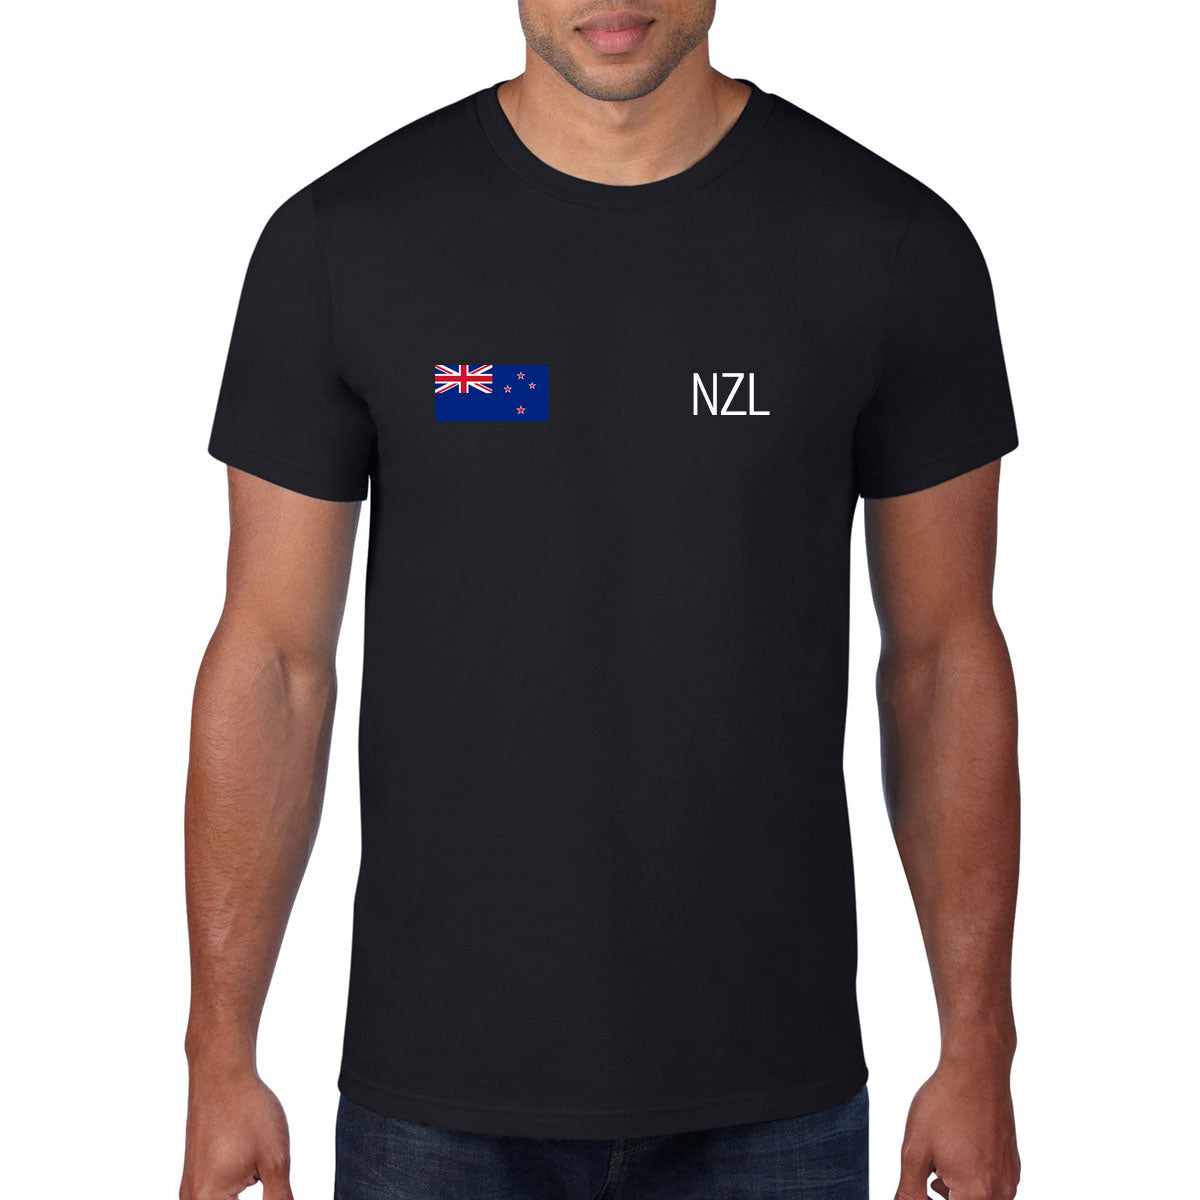 New Zealand Rugby Flag Tee - First XV rugbystuff.com